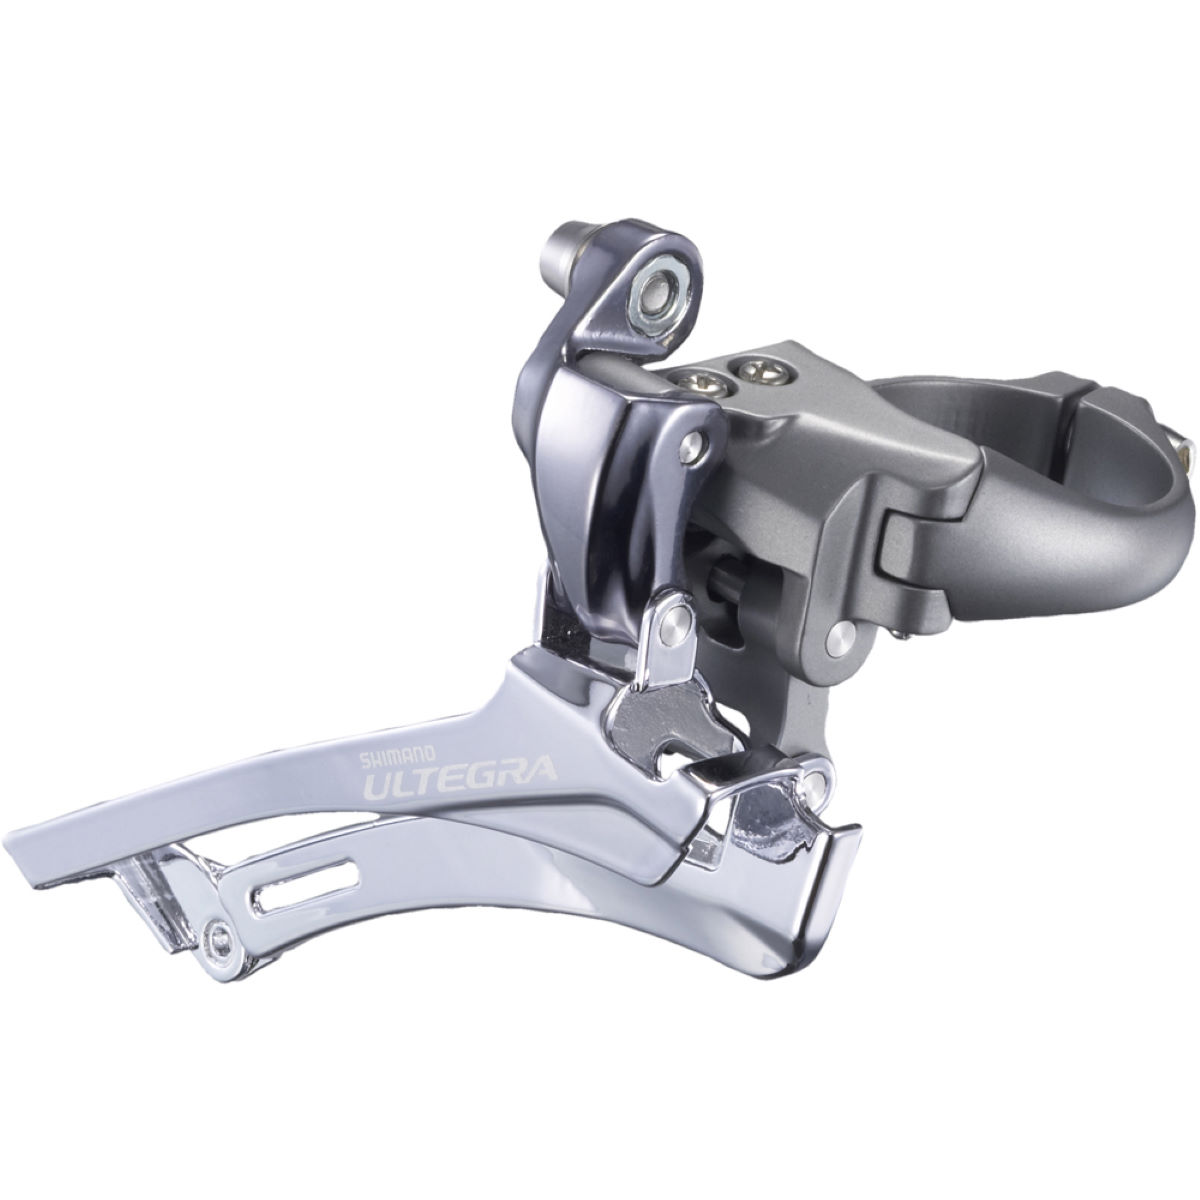 Shimano Ultegra 6700 Band-On Front Derailleur